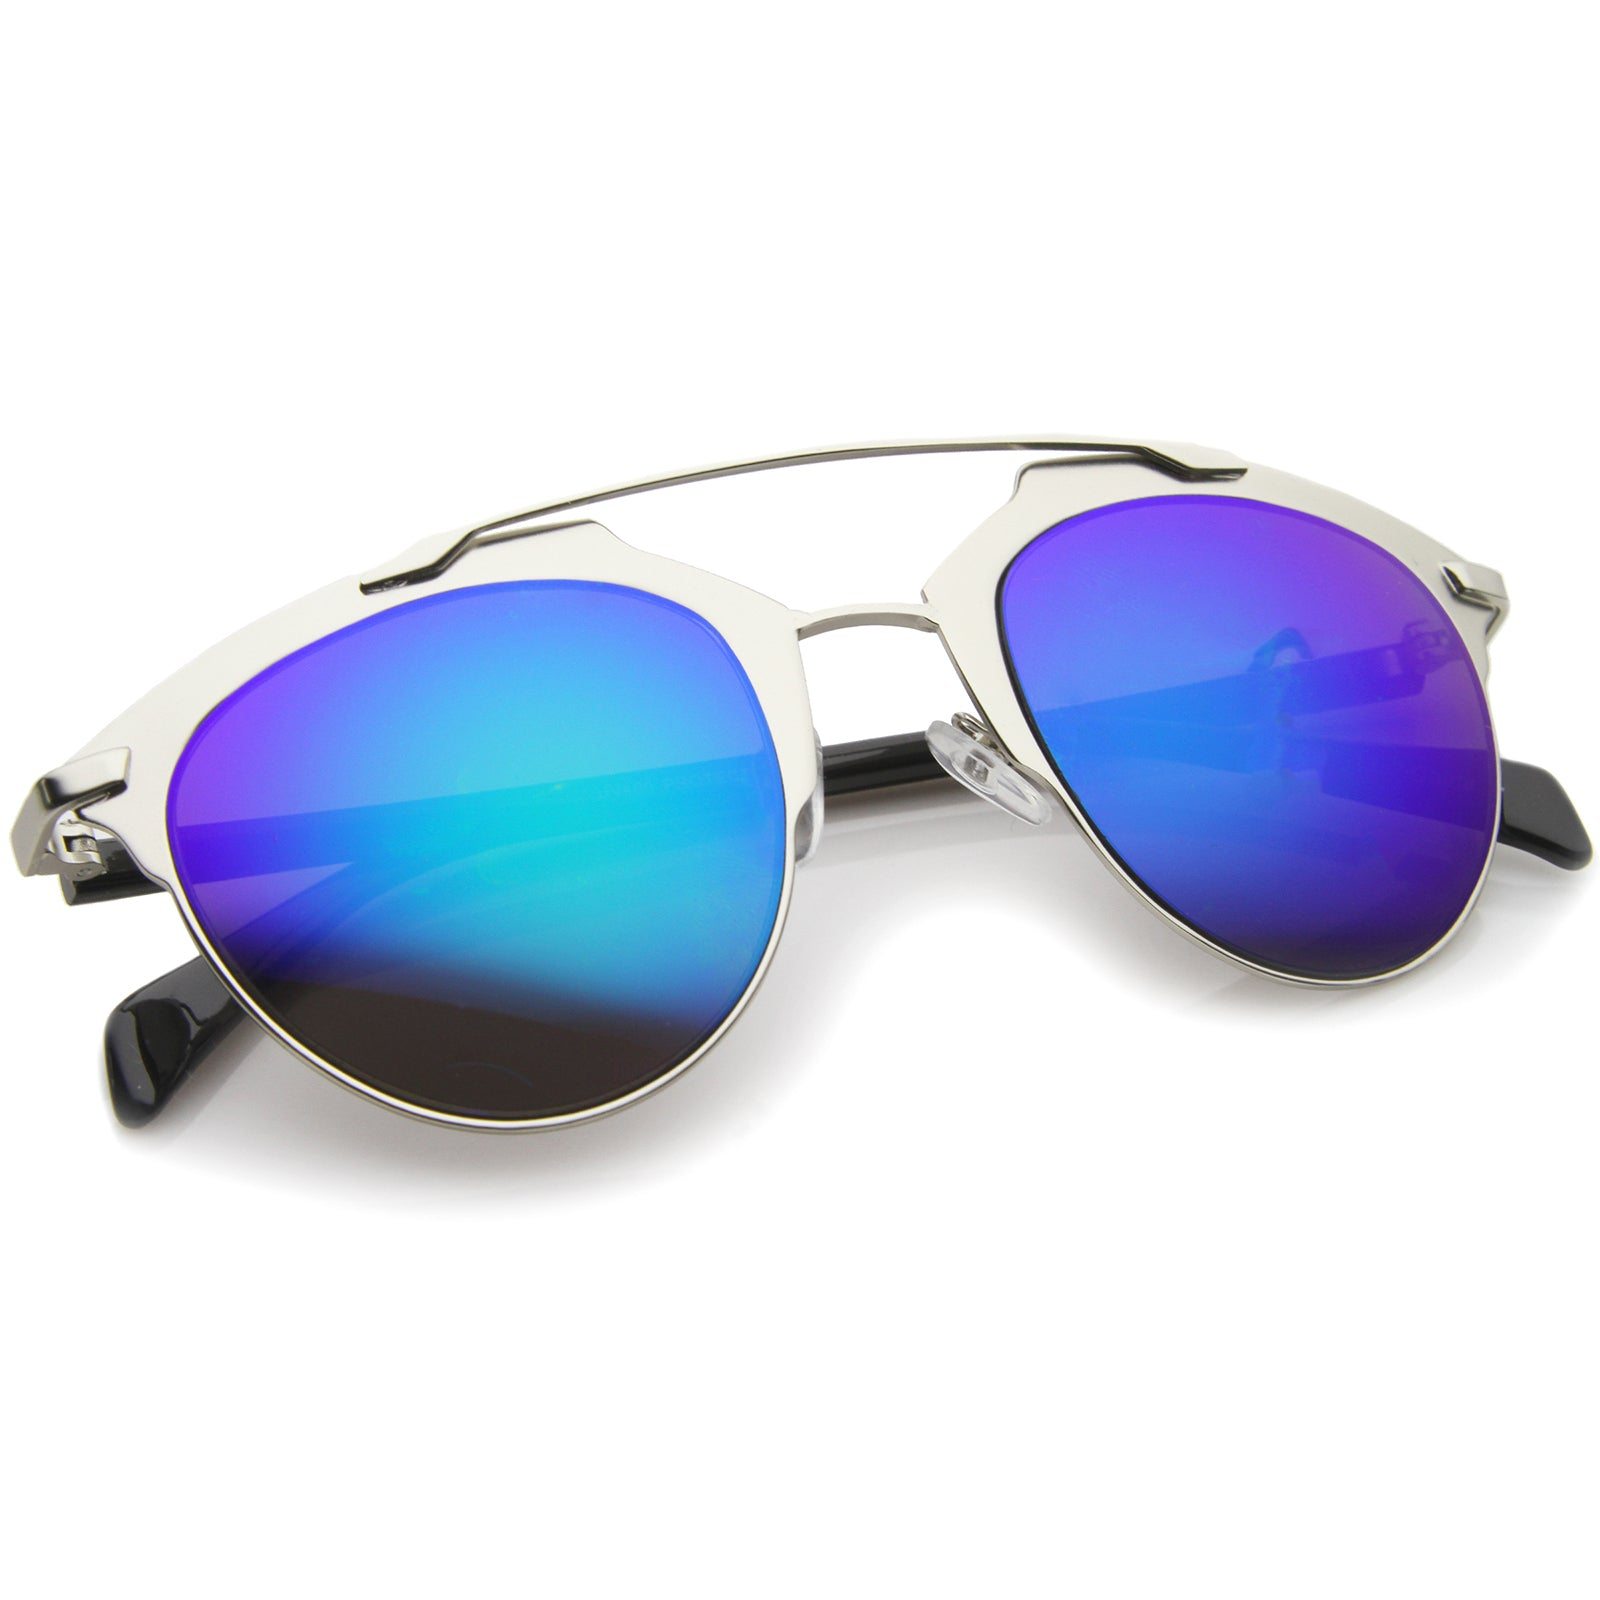 Modern Fashion Metal Double Bridge Mirror Lens Pantos Aviator Sunglasses 50mm - sunglass.la - 16